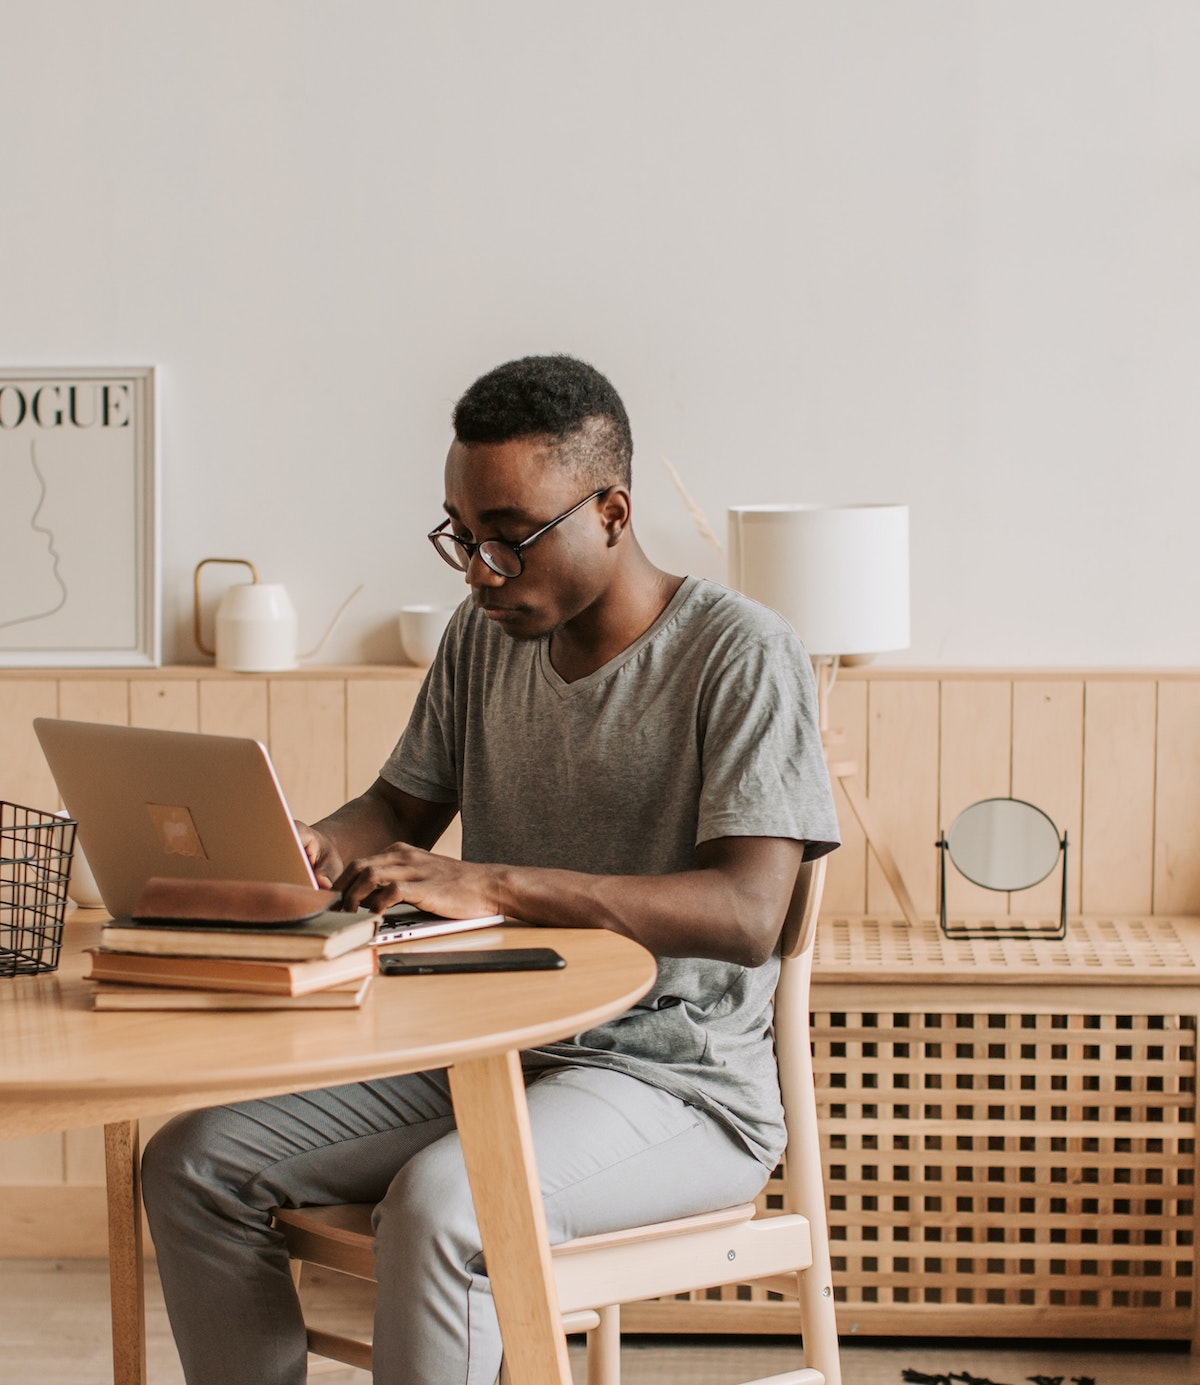 man at desk with laptop and books